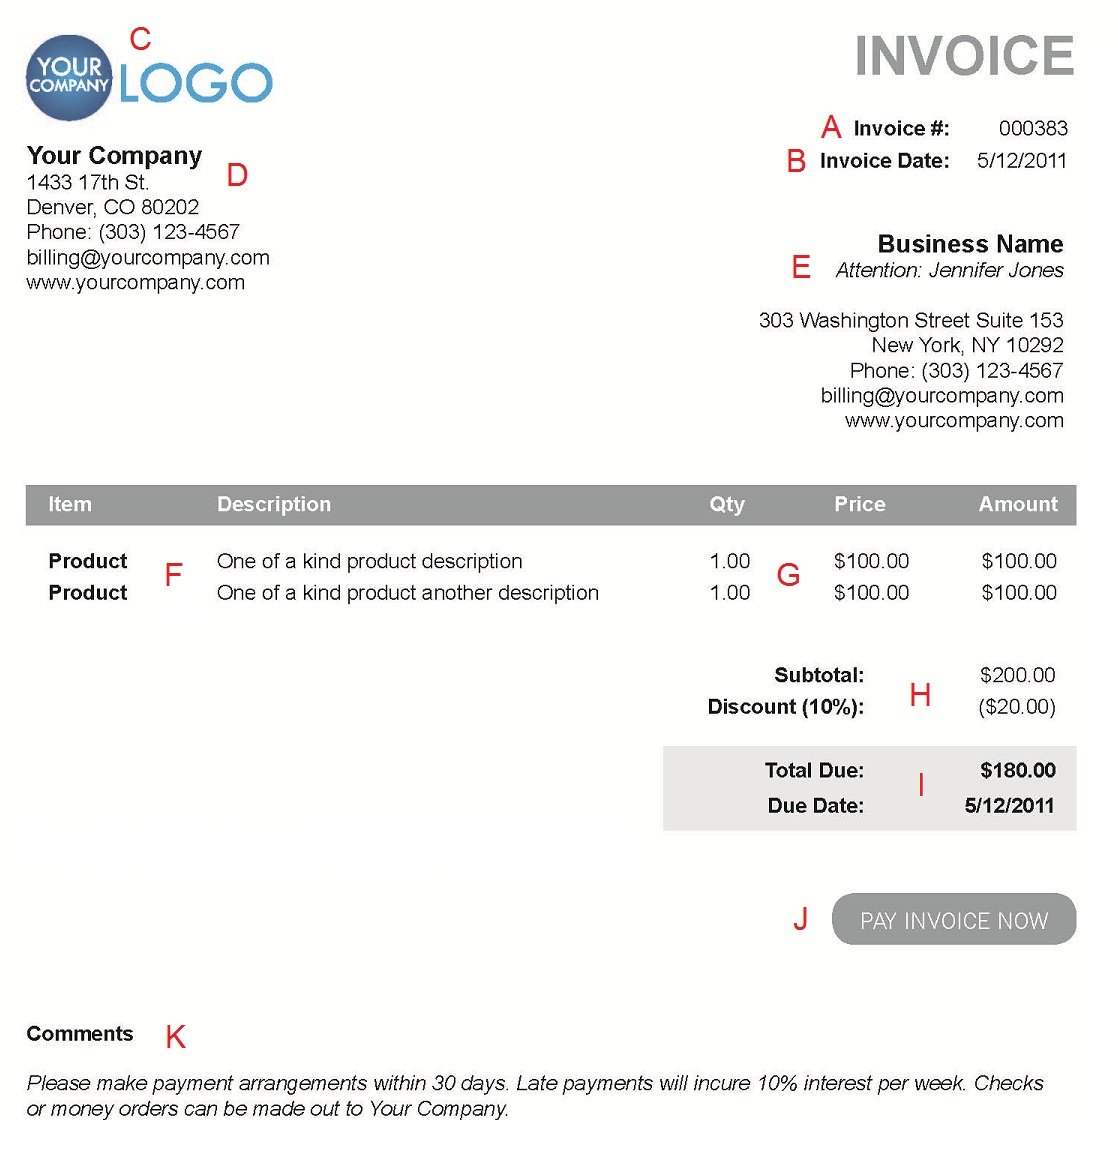 Sandiegolocksmithsus  Outstanding The  Different Sections Of An Electronic Payment Invoice With Remarkable A  With Beauteous Invoice Software For Windows Also Invoice Books Custom In Addition Create A Invoice Template And Freelance Invoice Software As Well As Invoice Freeware Additionally Self Employed Invoice From Paysimplecom With Sandiegolocksmithsus  Remarkable The  Different Sections Of An Electronic Payment Invoice With Beauteous A  And Outstanding Invoice Software For Windows Also Invoice Books Custom In Addition Create A Invoice Template From Paysimplecom